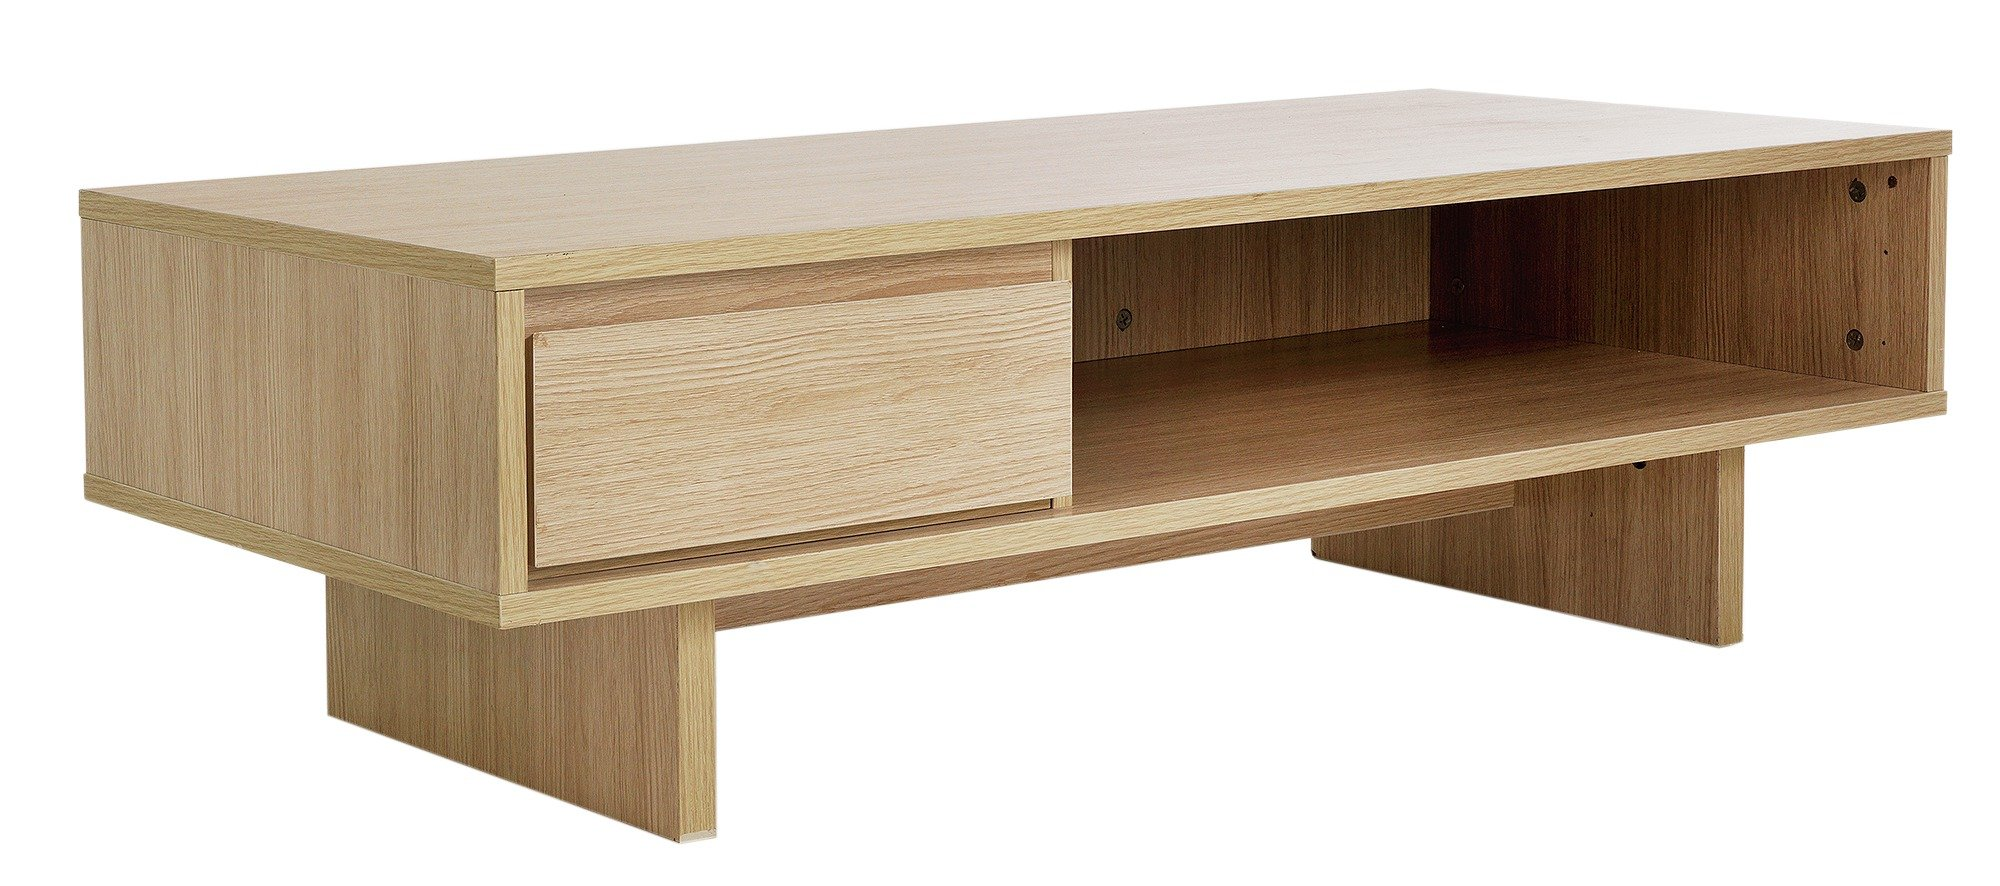 Coffee tables furniture sale direct for Coffee tables sale uk